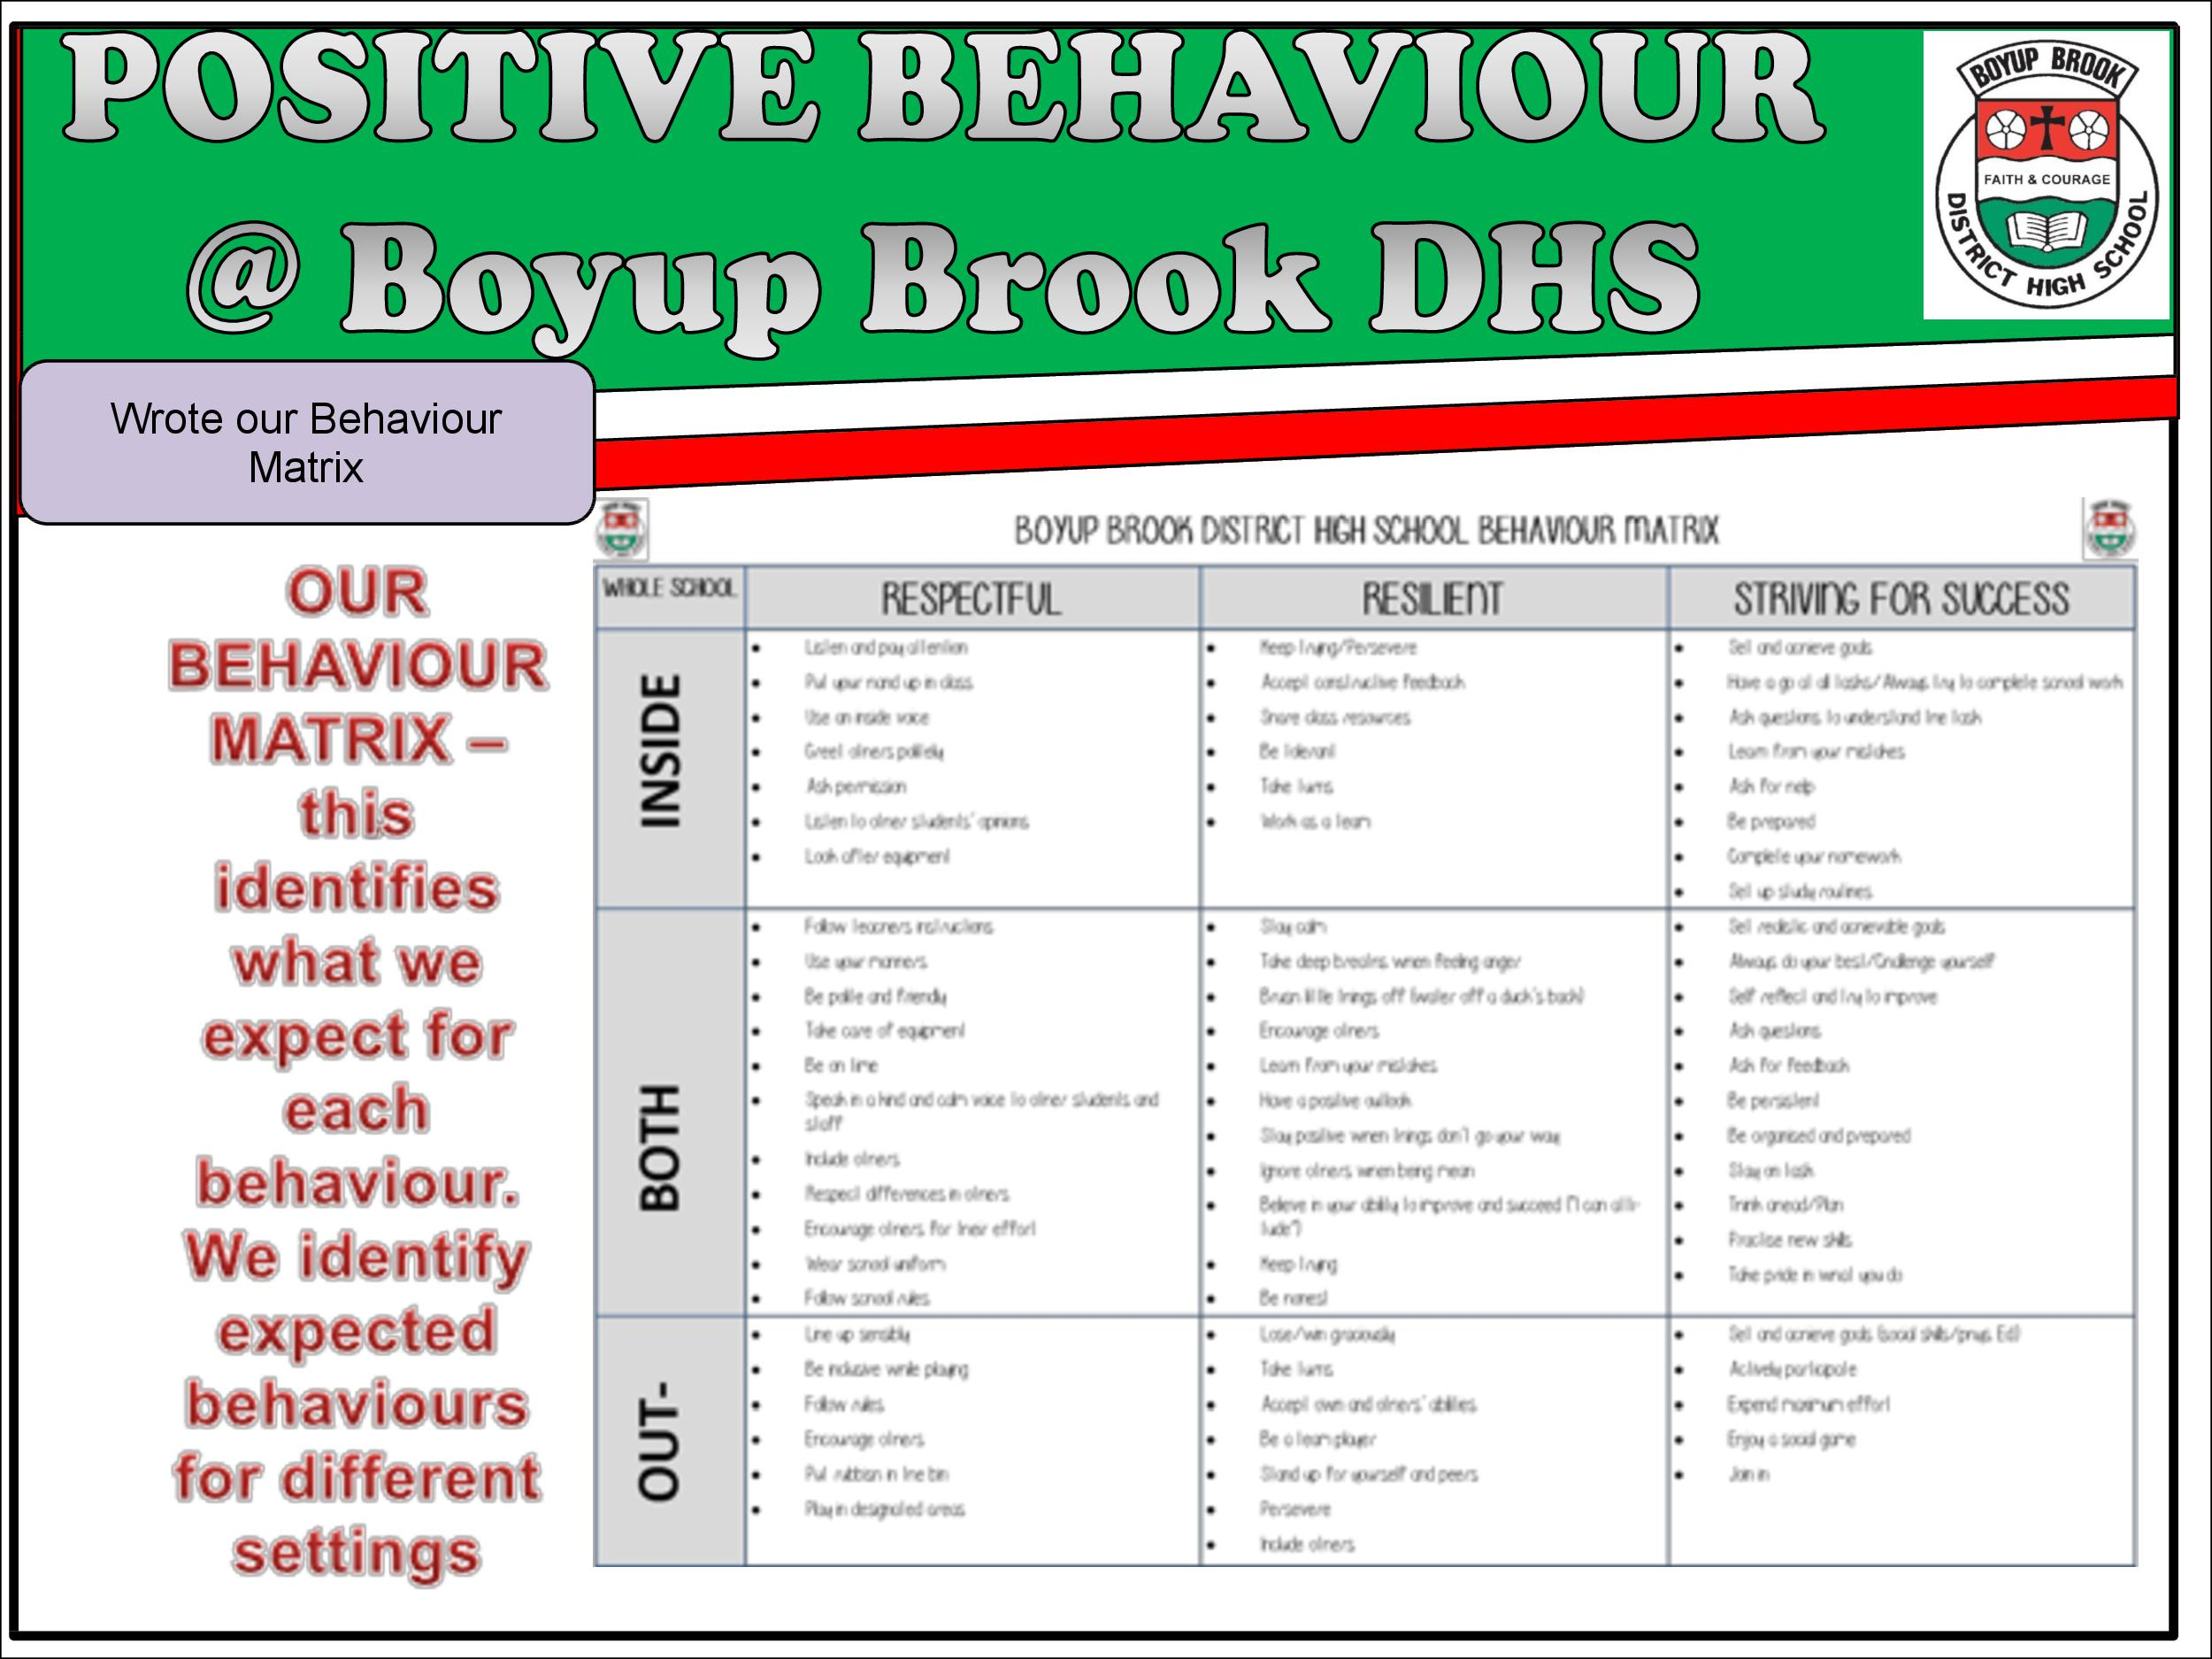 Positive Behaviour Support Page 12